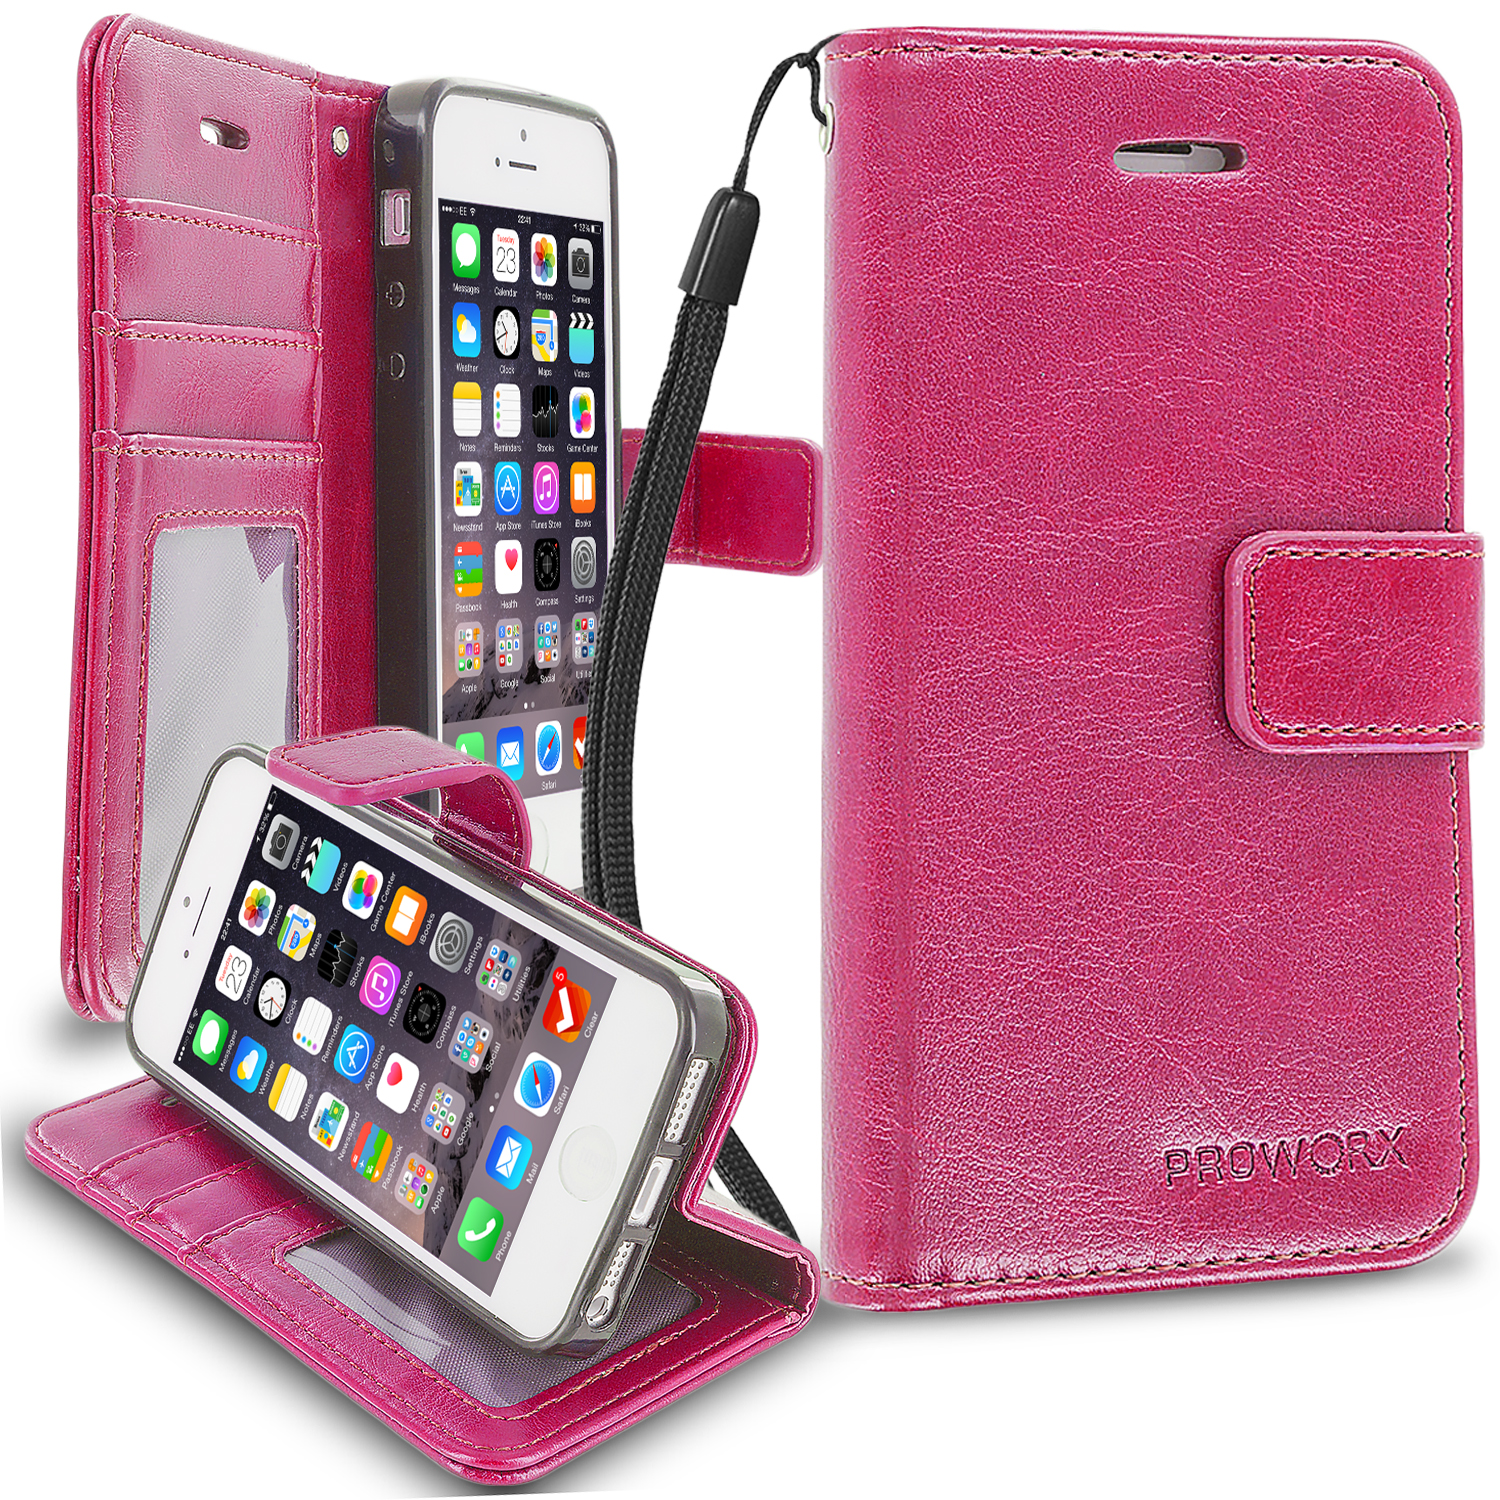 Apple iPhone 5/5S/SE Hot Pink ProWorx Wallet Case Luxury PU Leather Case Cover With Card Slots & Stand